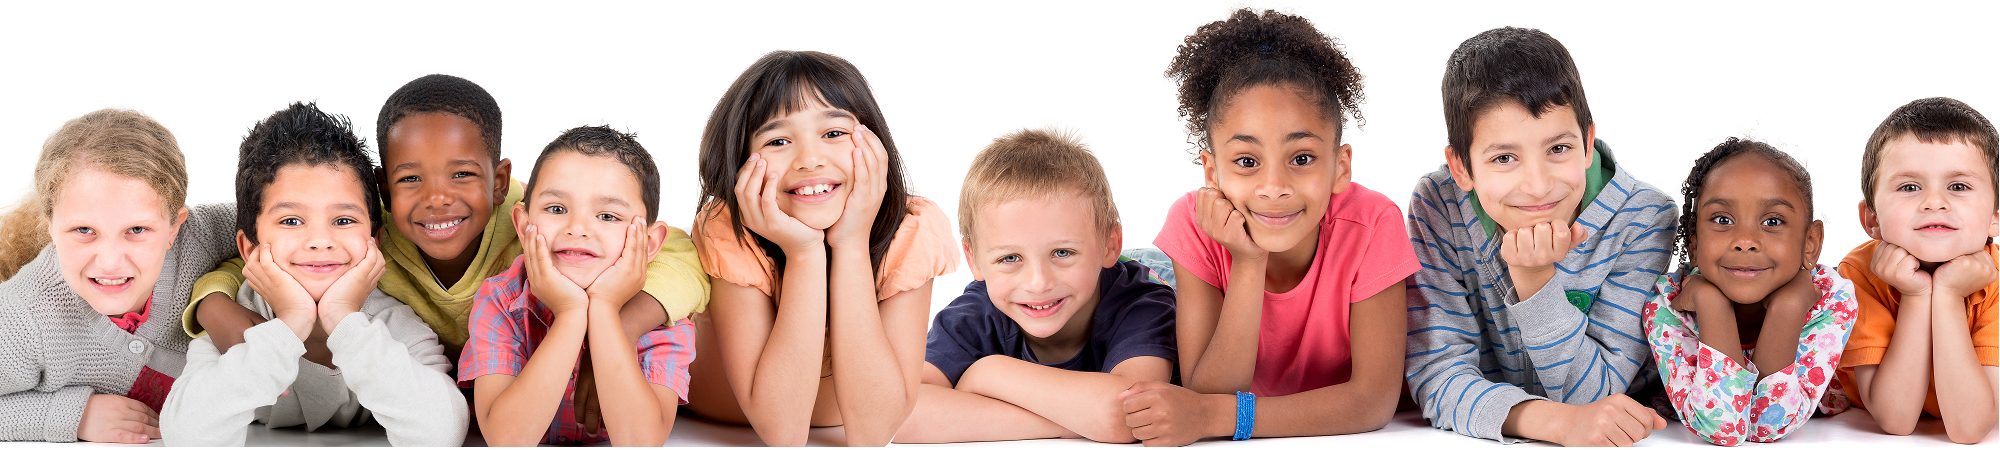 Chiropractic care for kids in Hermitage, Pennsylvania